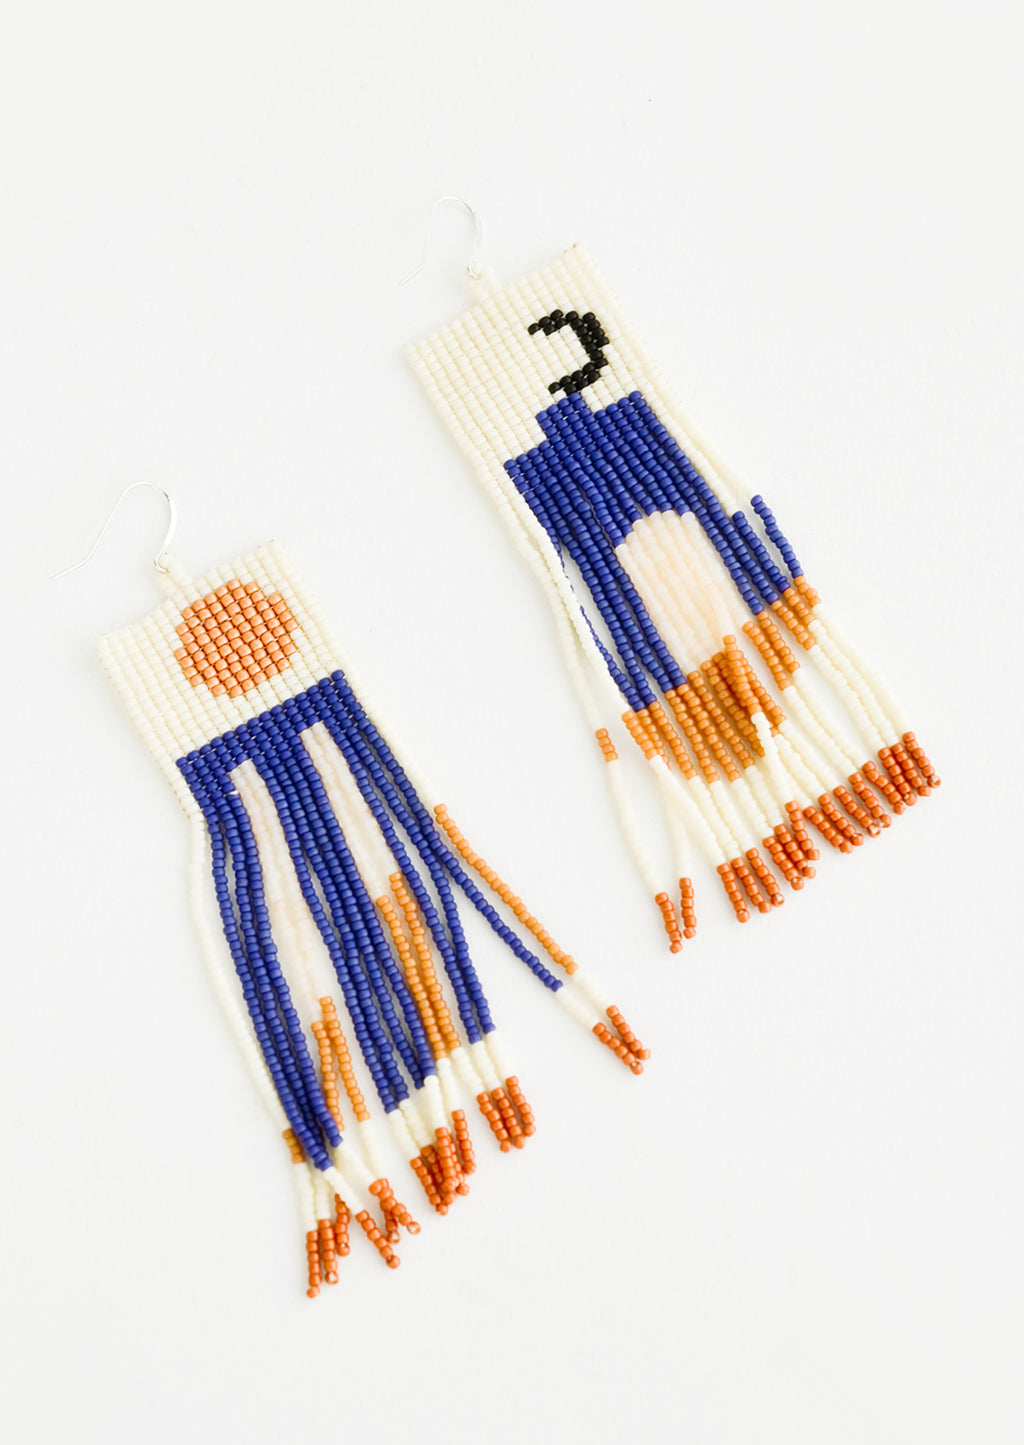 2: Fringe earrings of cream, blue, orange, and black beads depicting abstract scenes of the sun and moon.